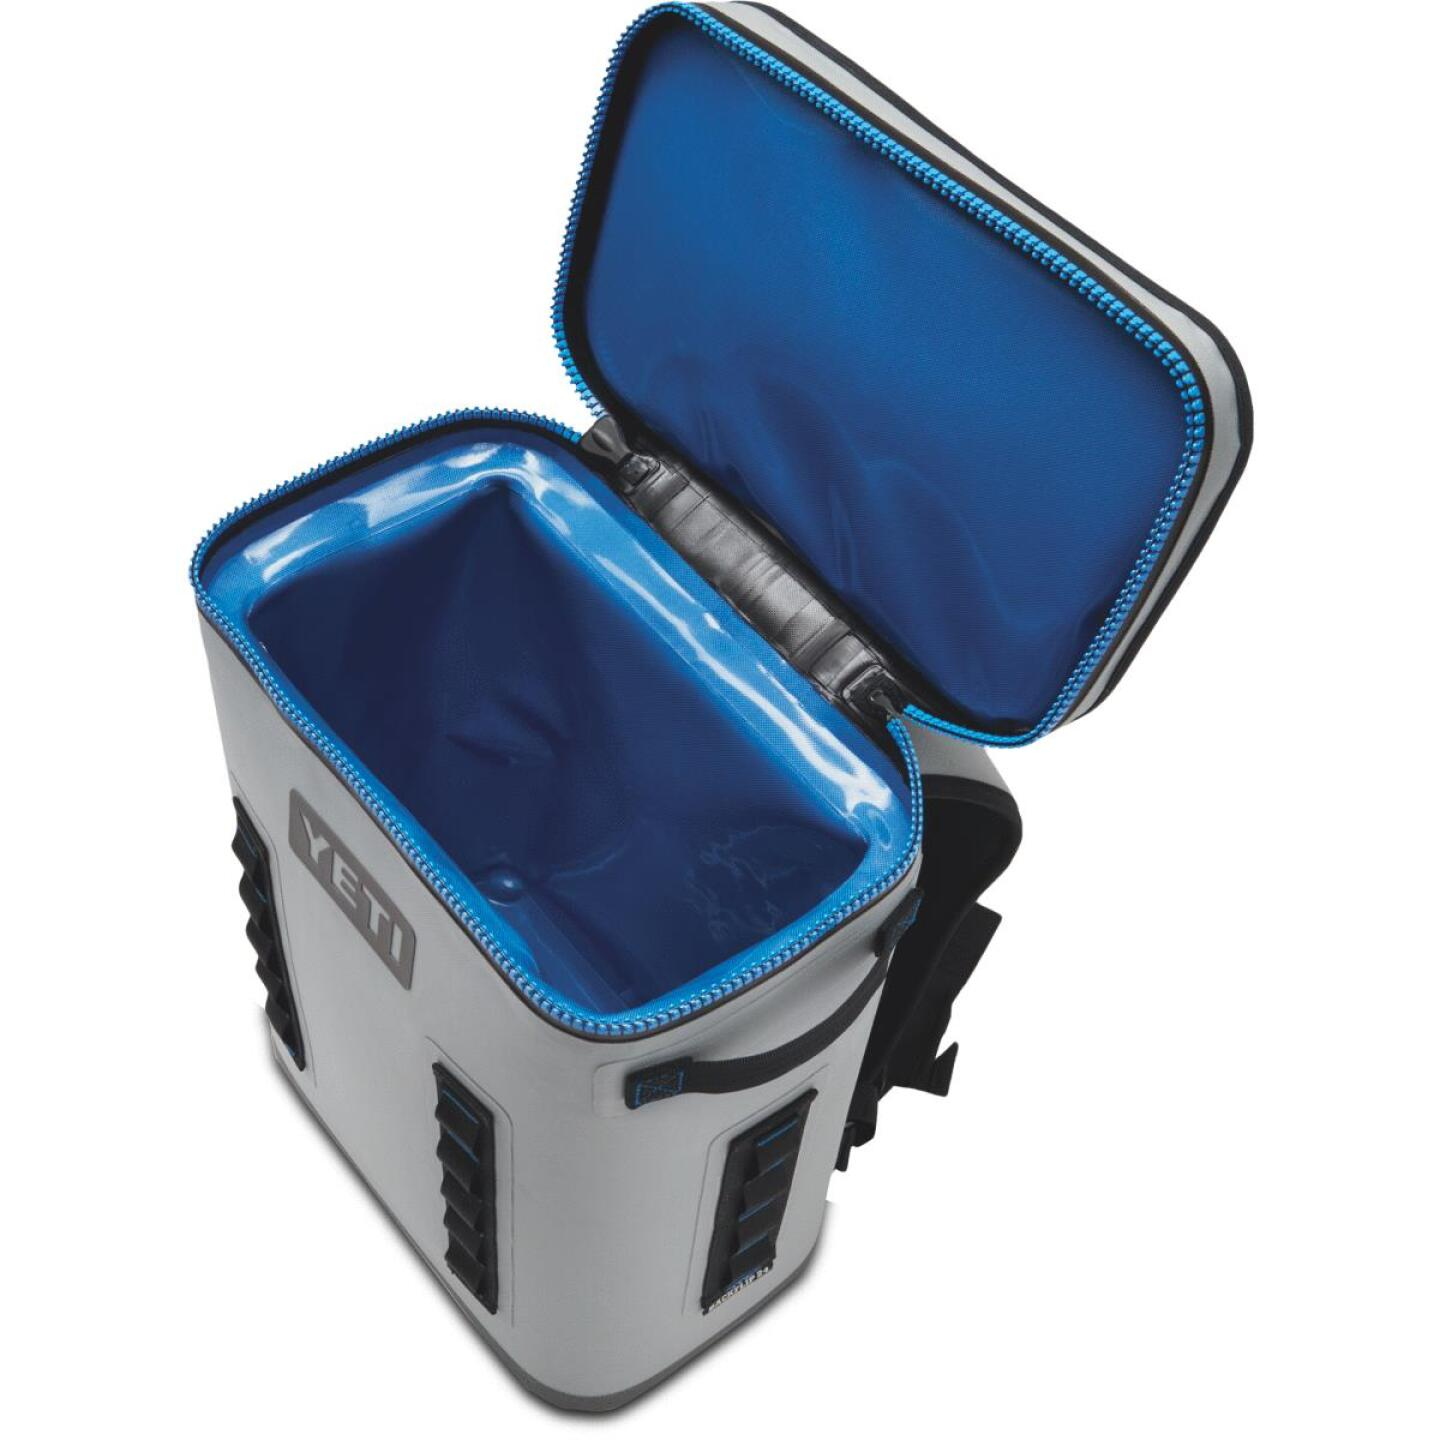 Yeti Hopper BackFlip 24 20-Can Soft-Side Cooler, Gray Image 4